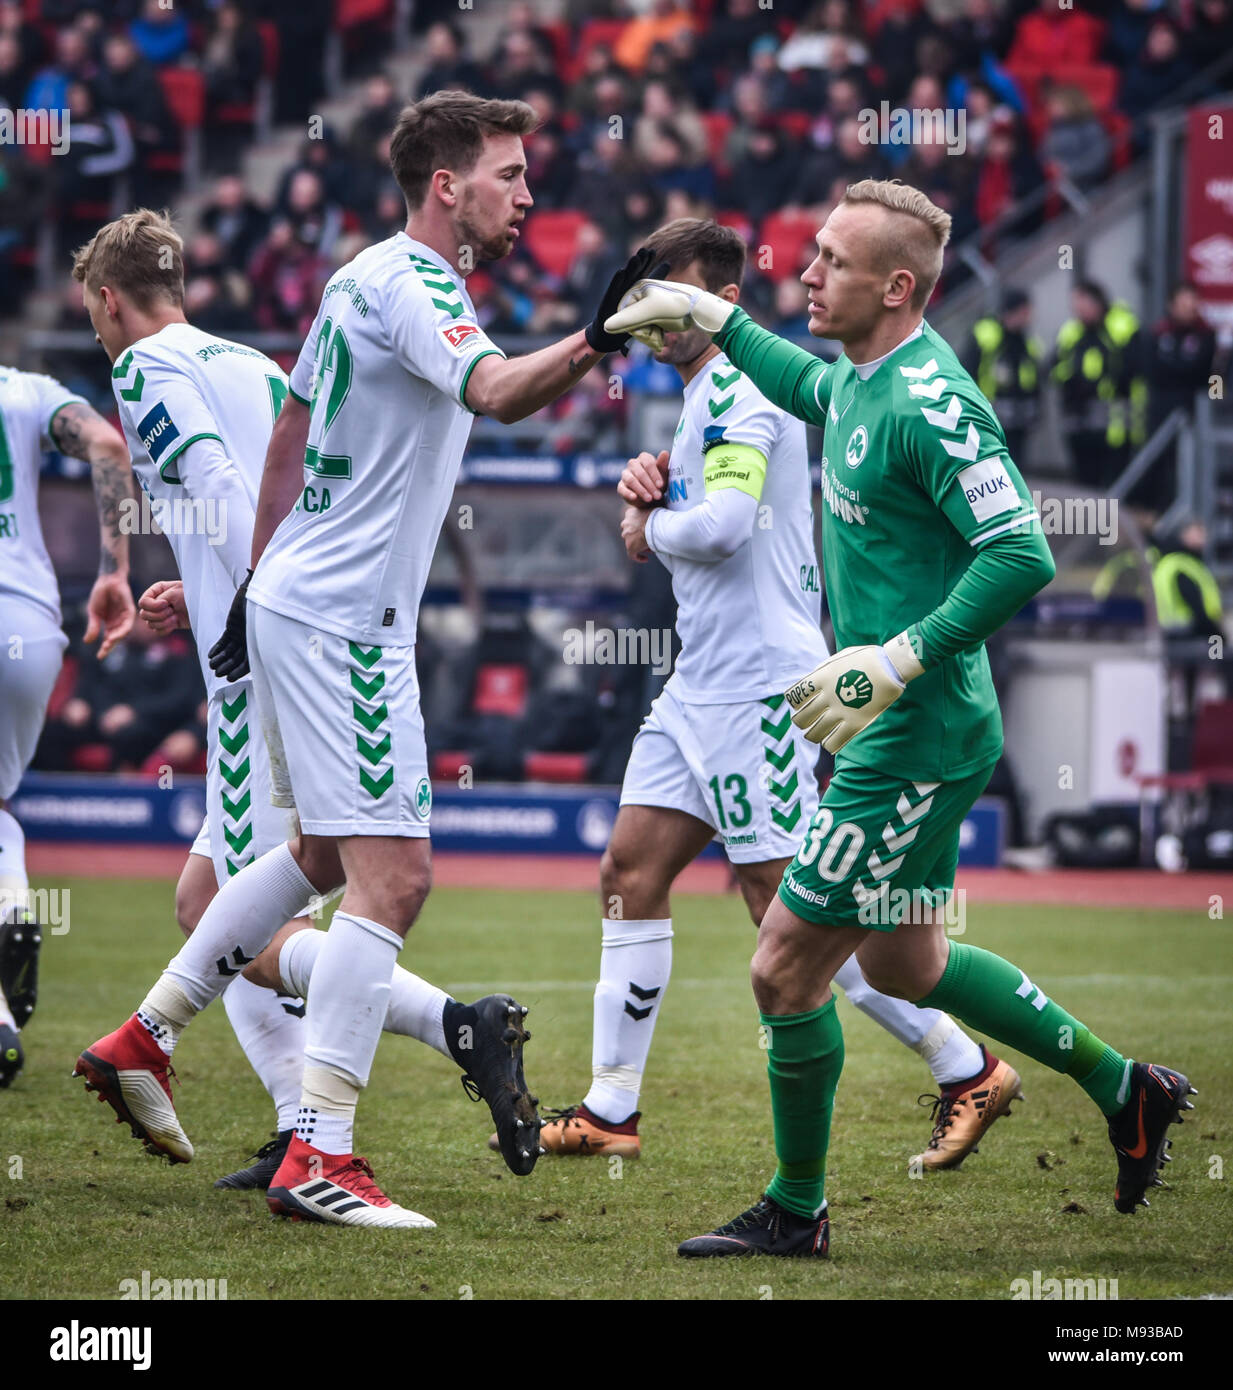 Germany, Nuernberg, Max-Morlock-Stadion, 03 March 2018 - 2.Bundesliga - 1.FC Nürnberg vs. SpVgg Greuther Fürth - 264th Franken Derby! Stock Photo